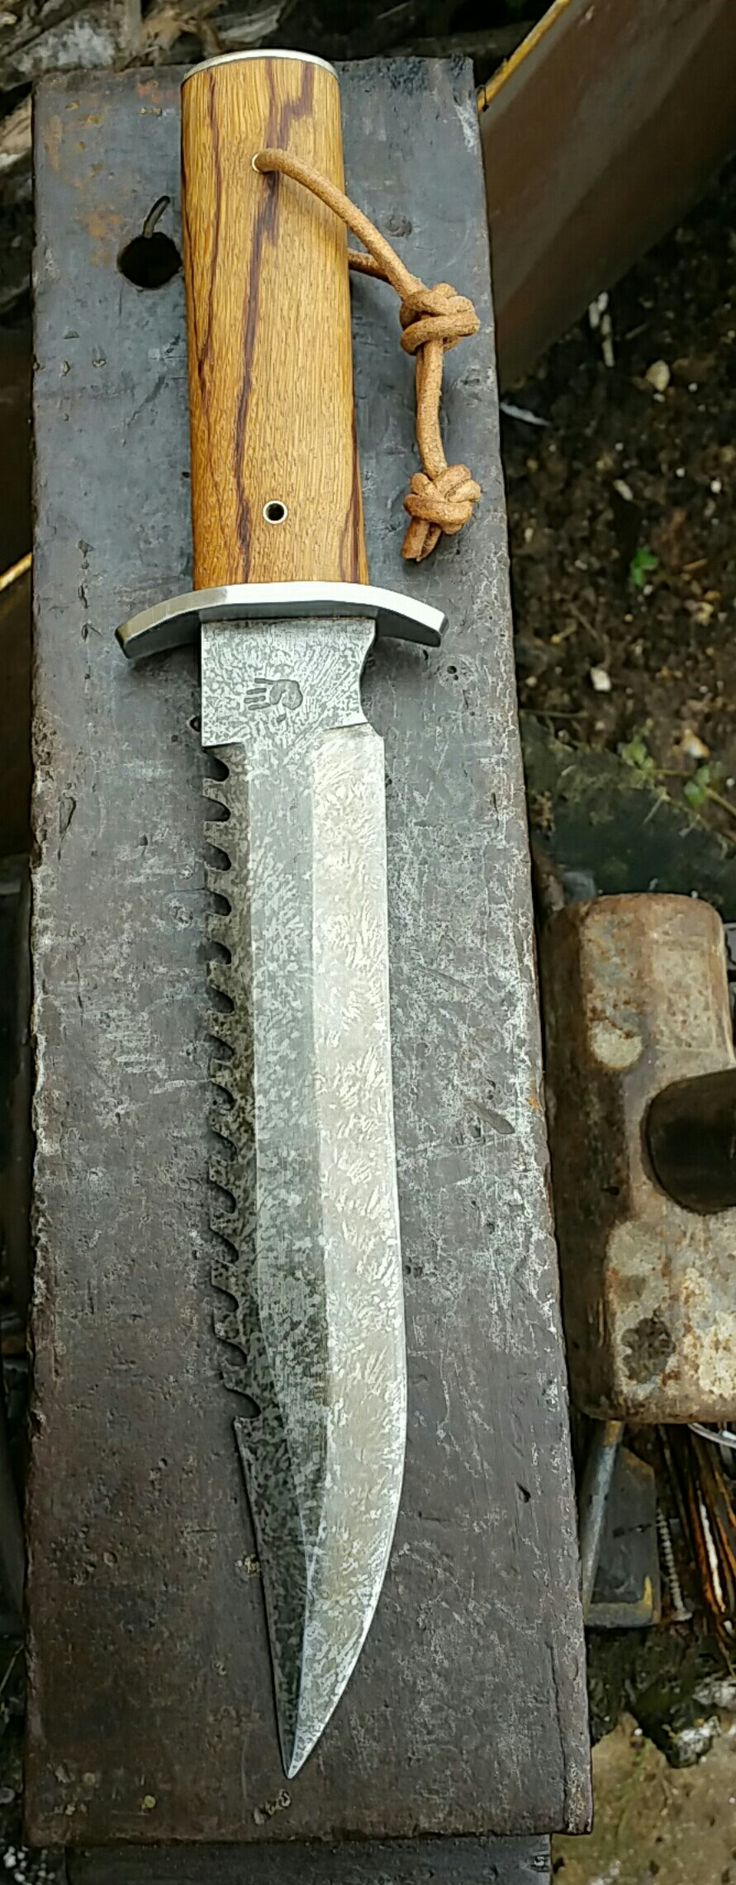 My take on the Rambo 2 knife  #Gardenforgeuk